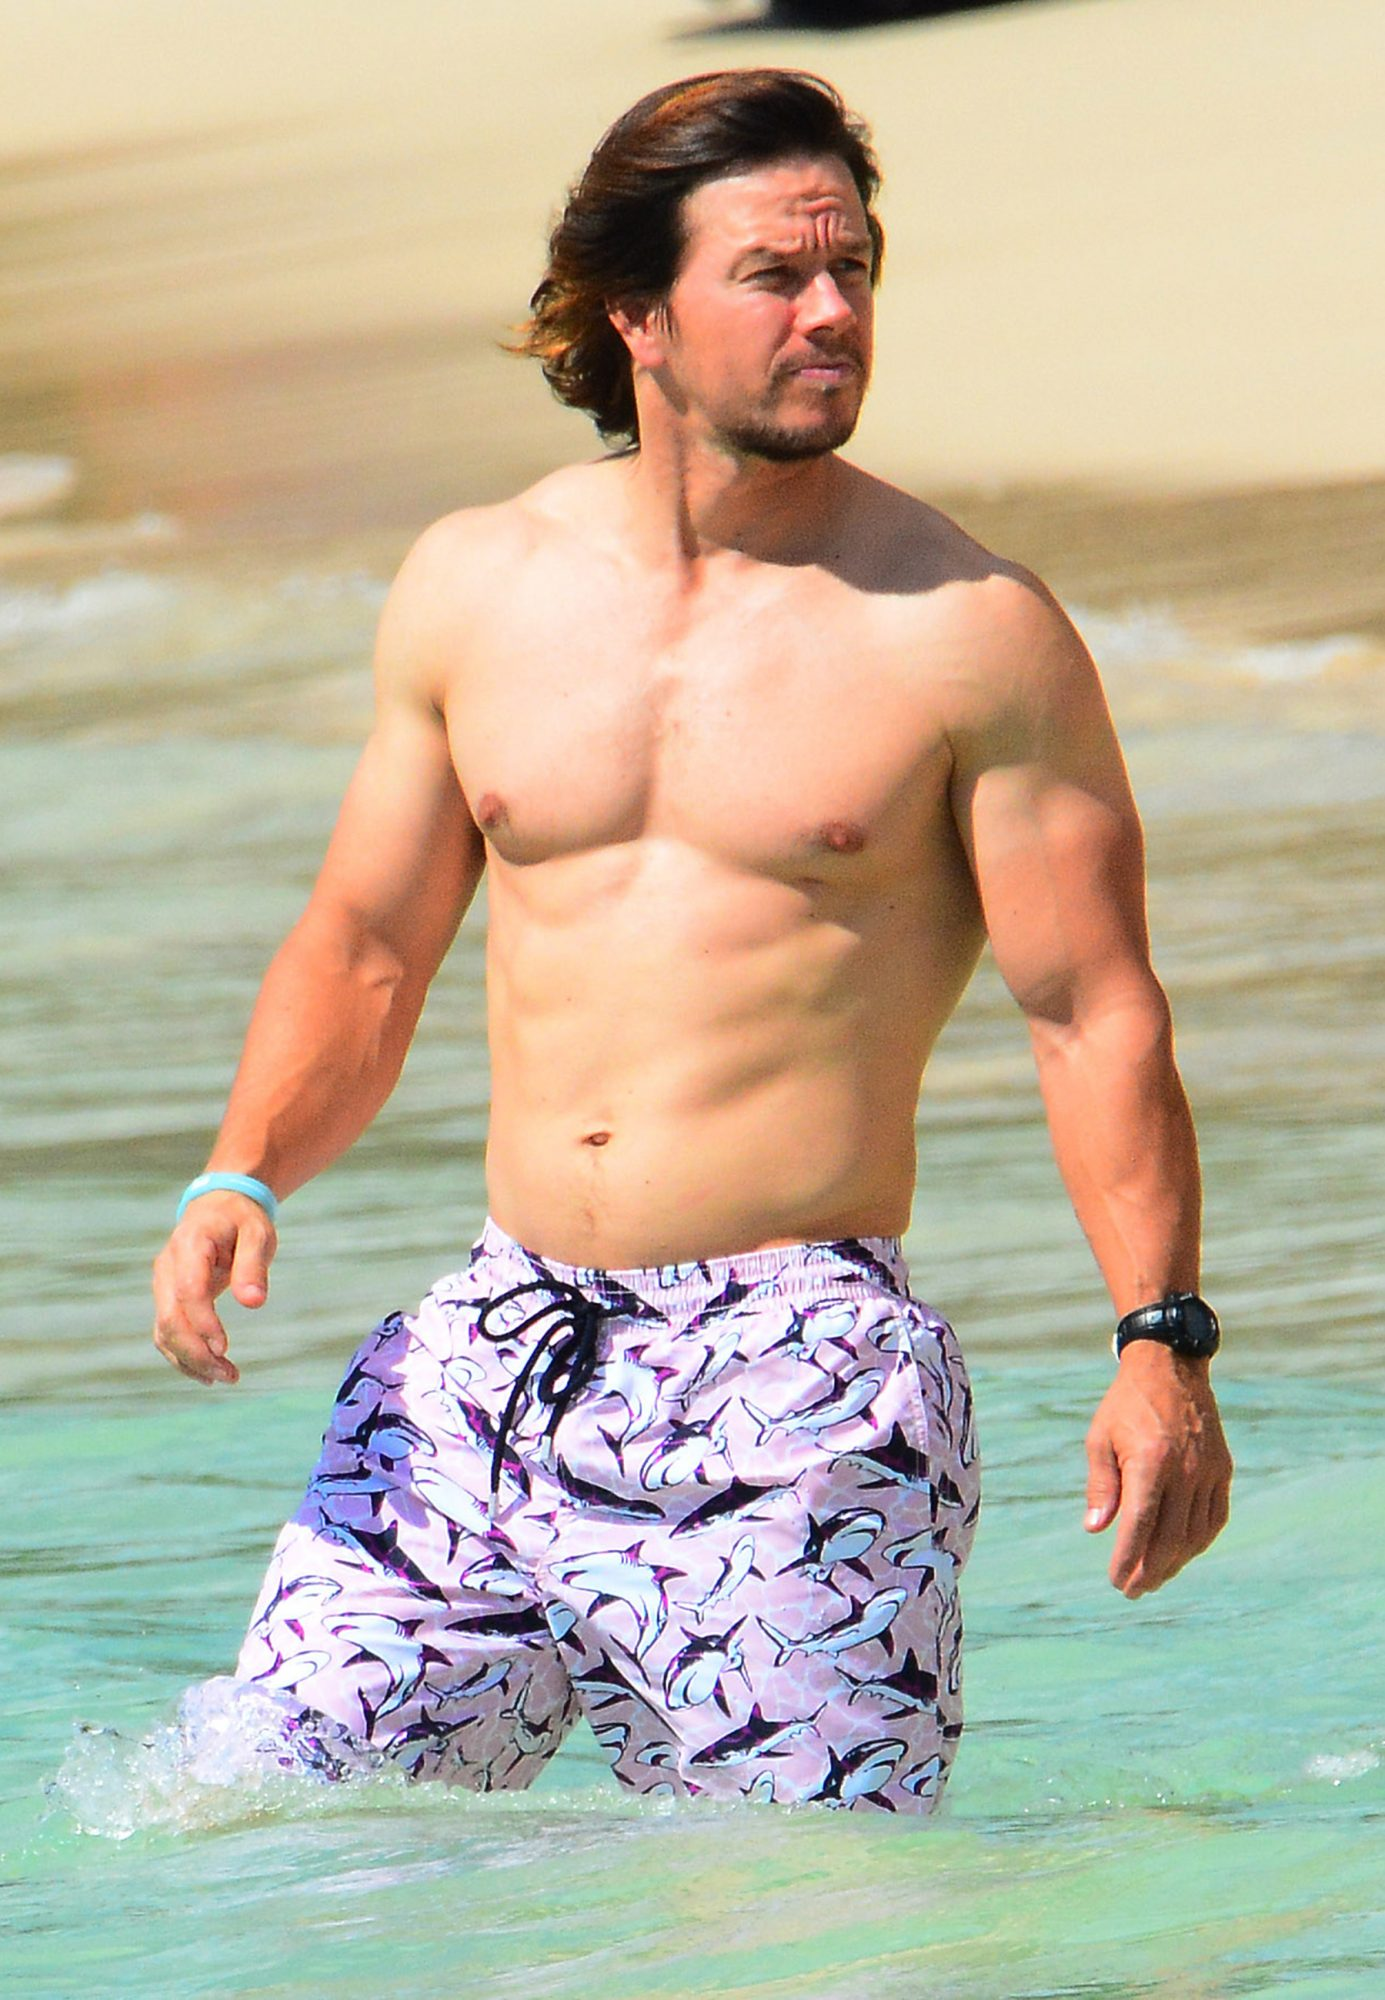 Mark Wahlberg and wife Rhea spotted at the beach while on holiday in Barbados